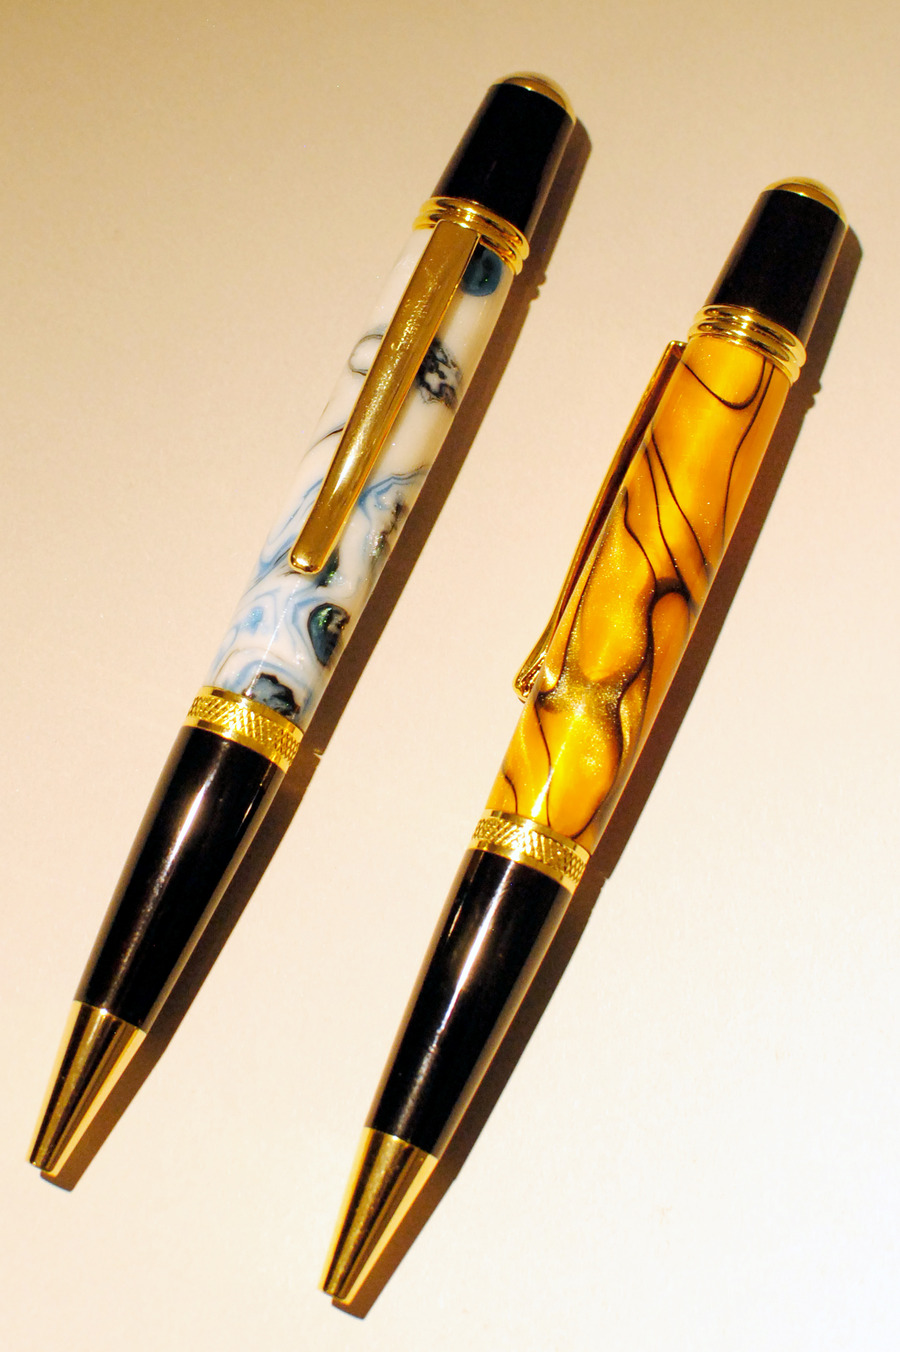 Allywood Creations Wall Street Pen - Acrylic with 24K Gold & Black